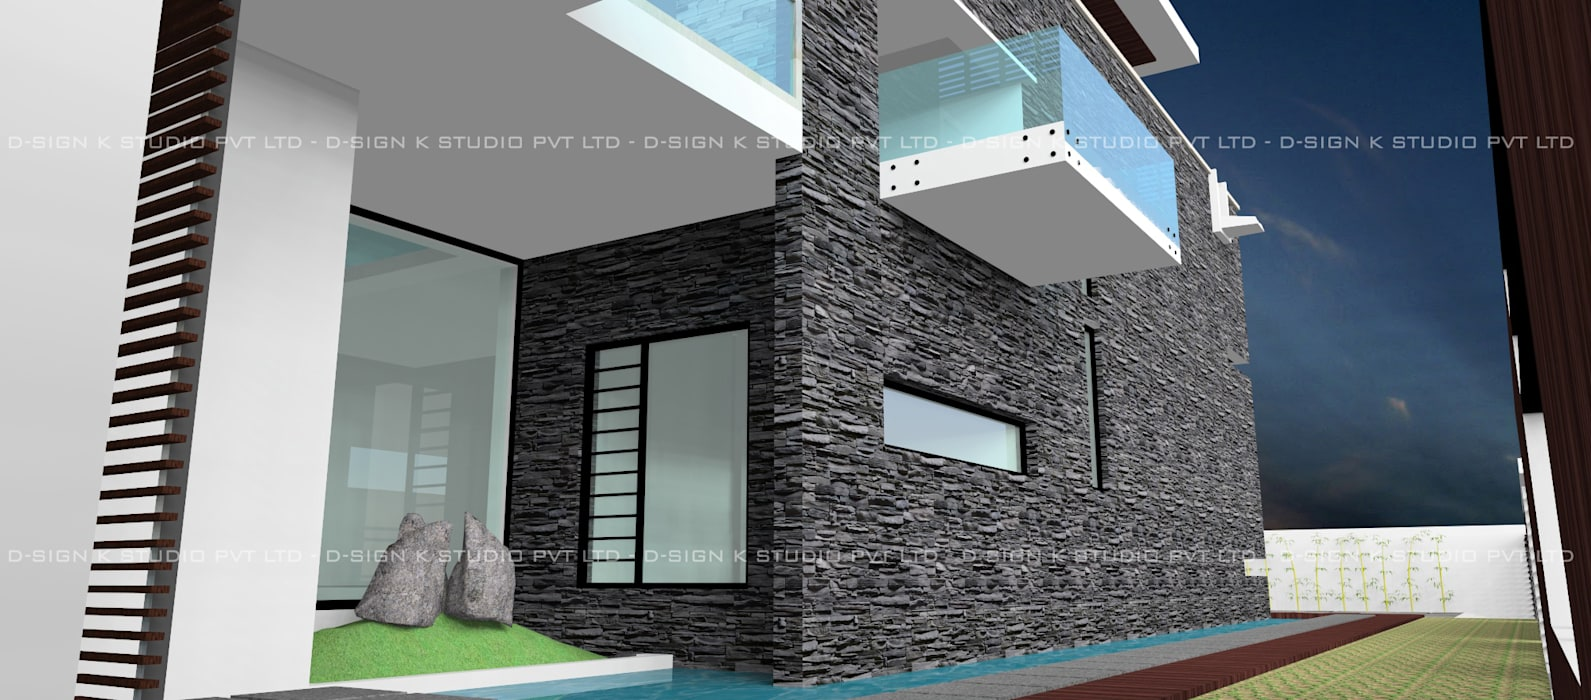 Hill View Residential bungalow for Mr.Anandha Krishnan Modern houses by D-SiGN KSTUDIO™ PVT LTD ARCHITECTS + INTERIORS + LANDSCAPING Modern